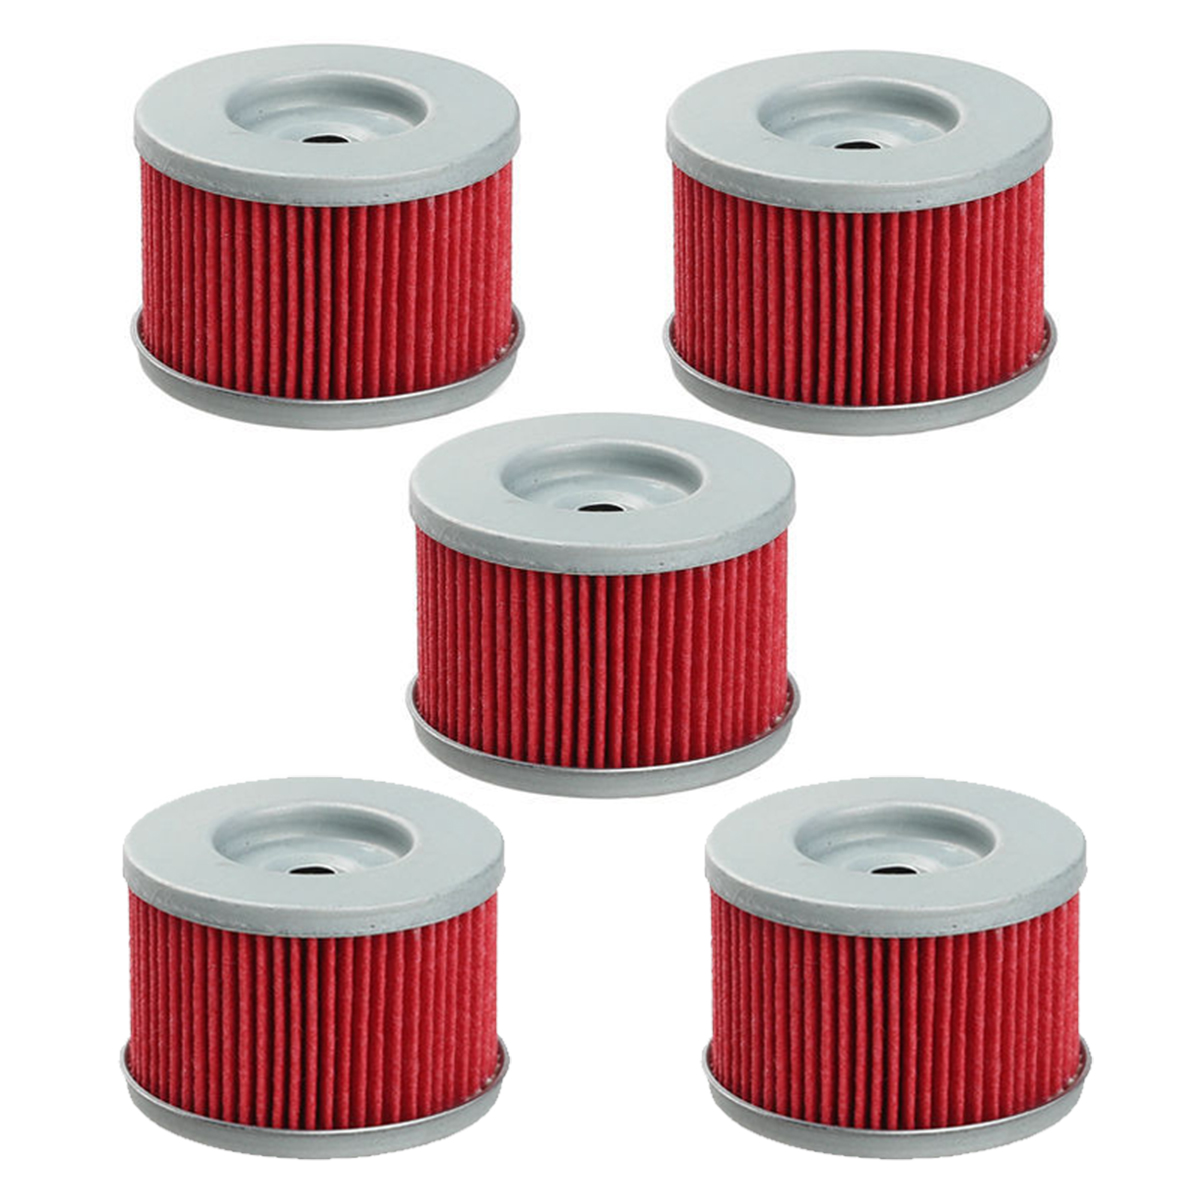 hight resolution of for just us 9 99 buy 5pcs oil fuel filter for honda rancher 350 420 trx300ex 400ex fourtrax 300 foreman 500 from the china wholesale webshop